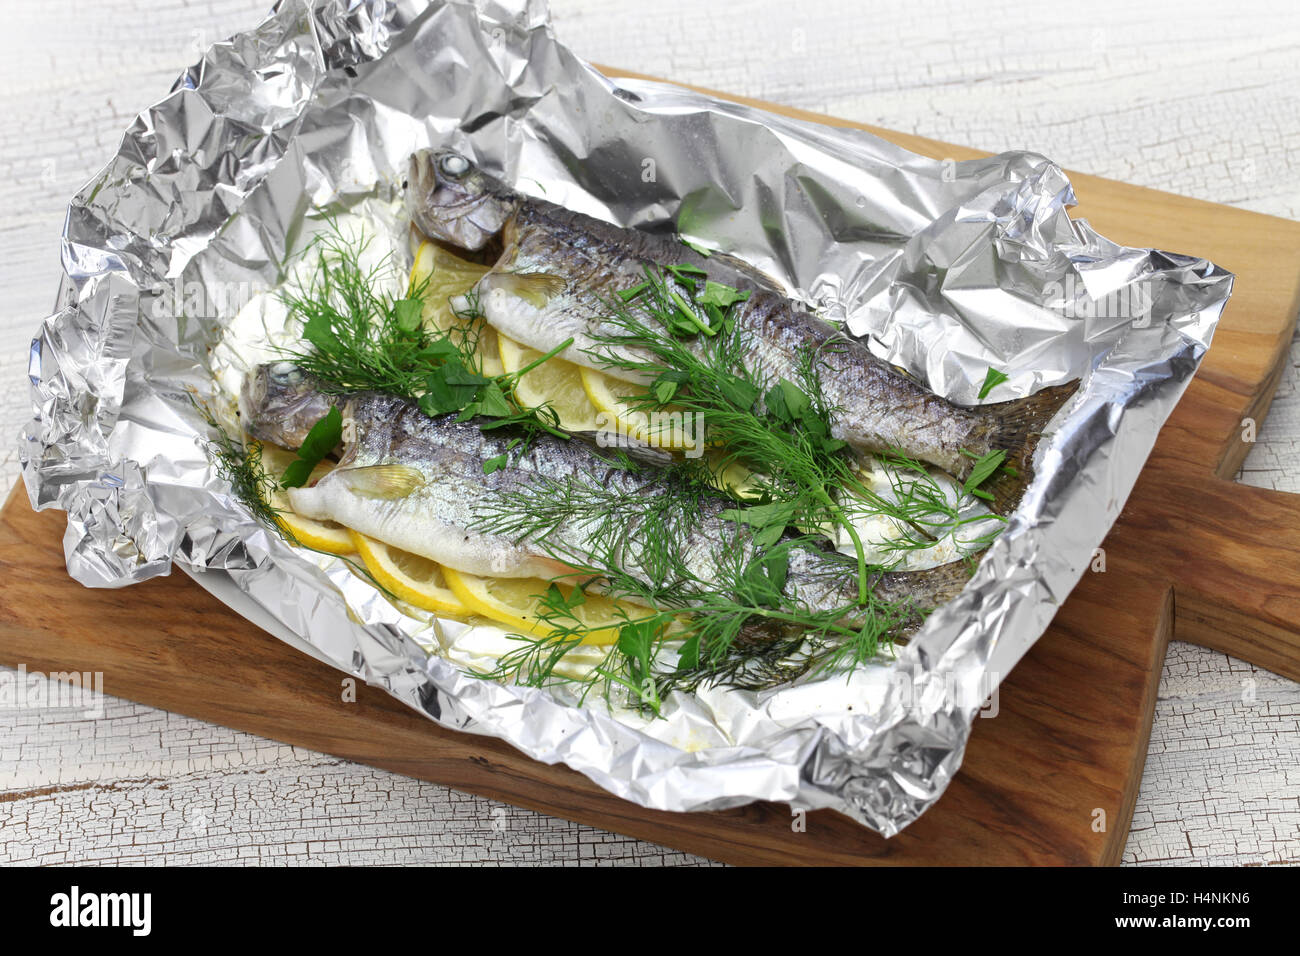 whole rainbow trout baked in foil on cutting board - Stock Image